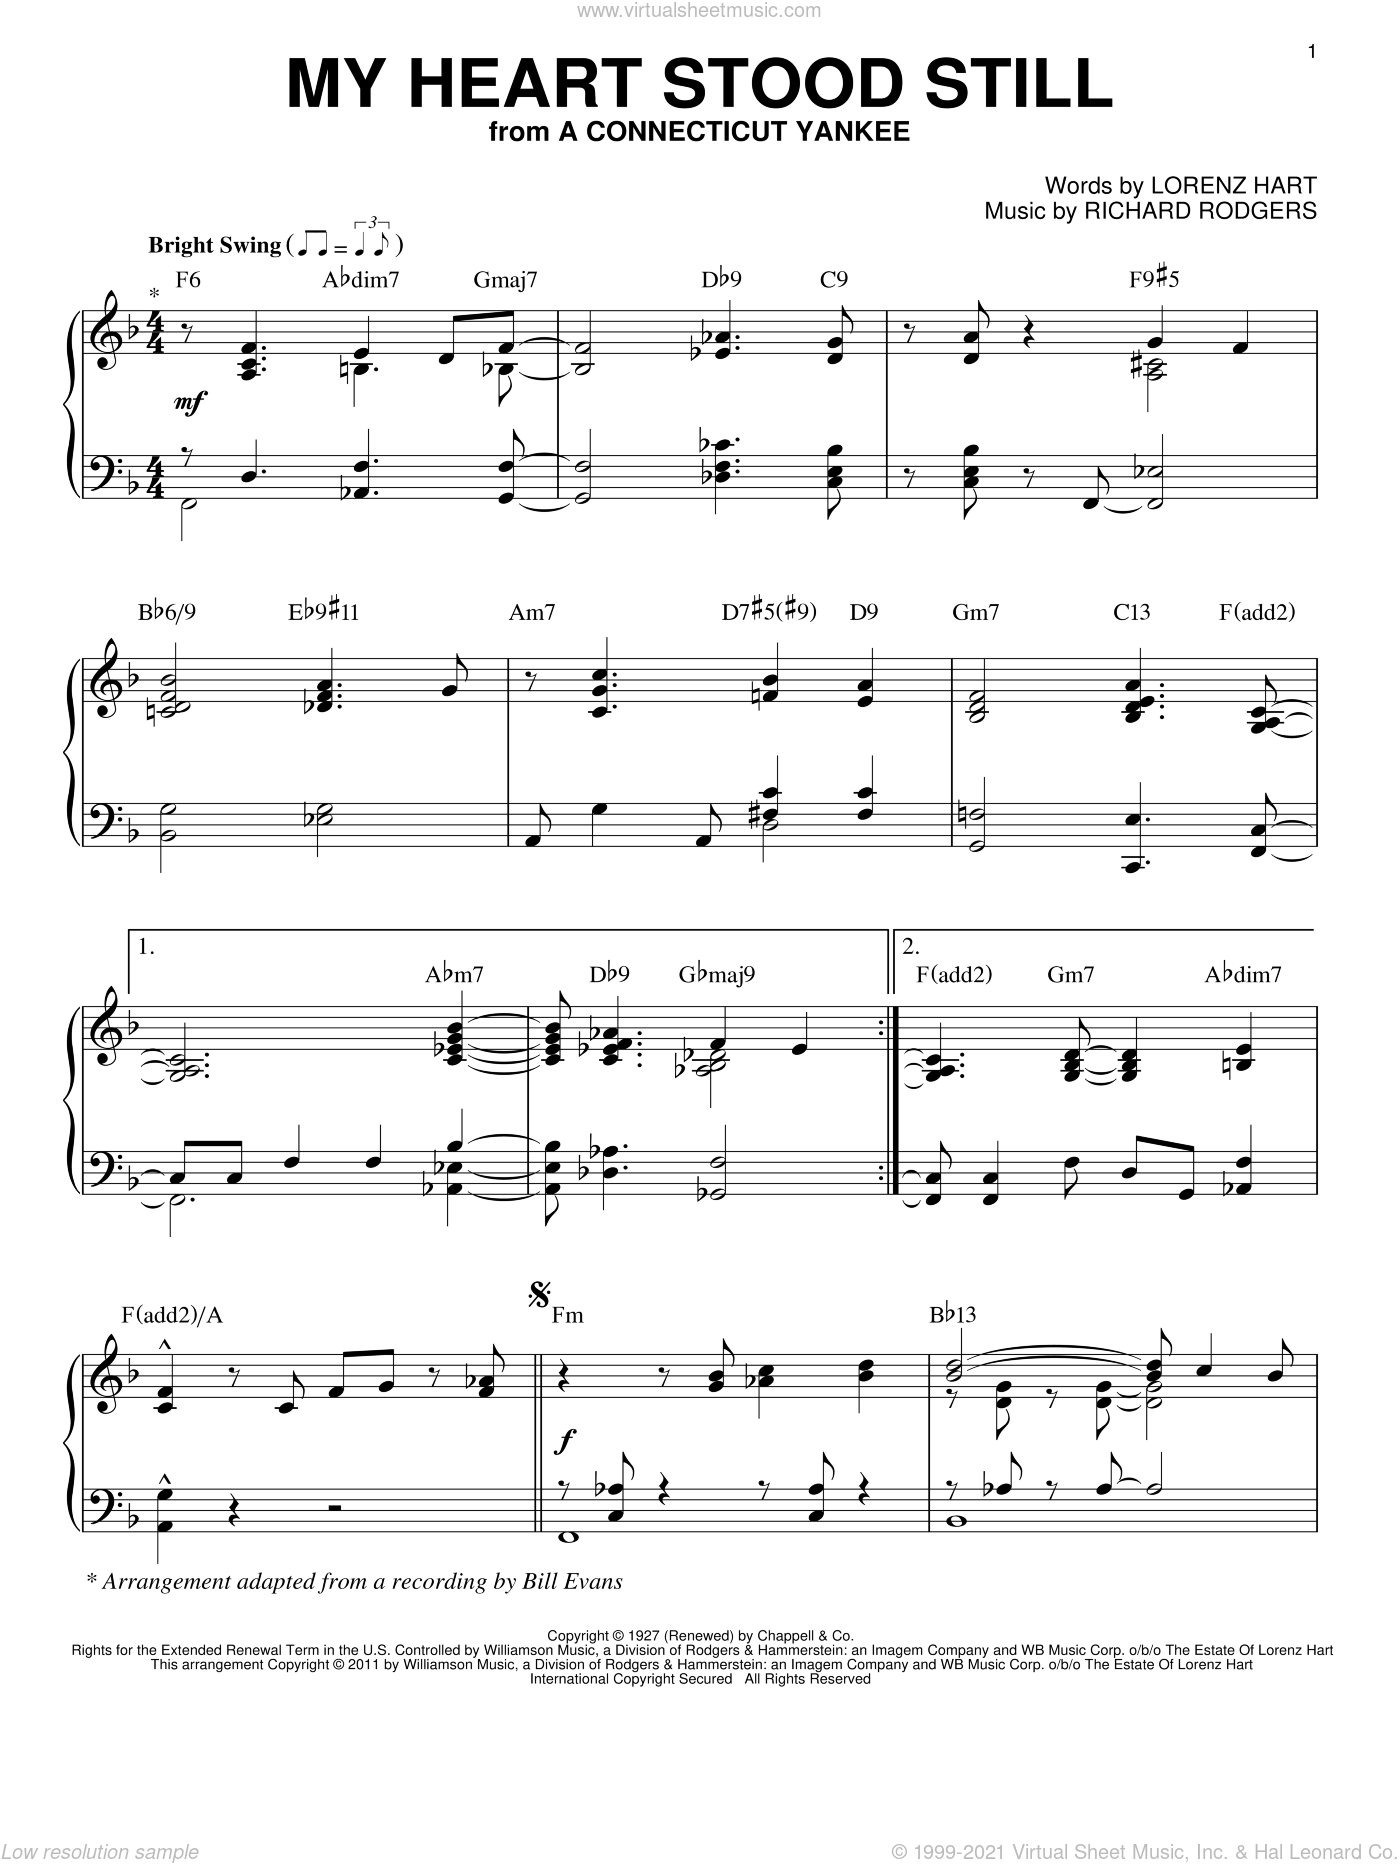 My Heart Stood Still sheet music for piano solo by Richard Rodgers